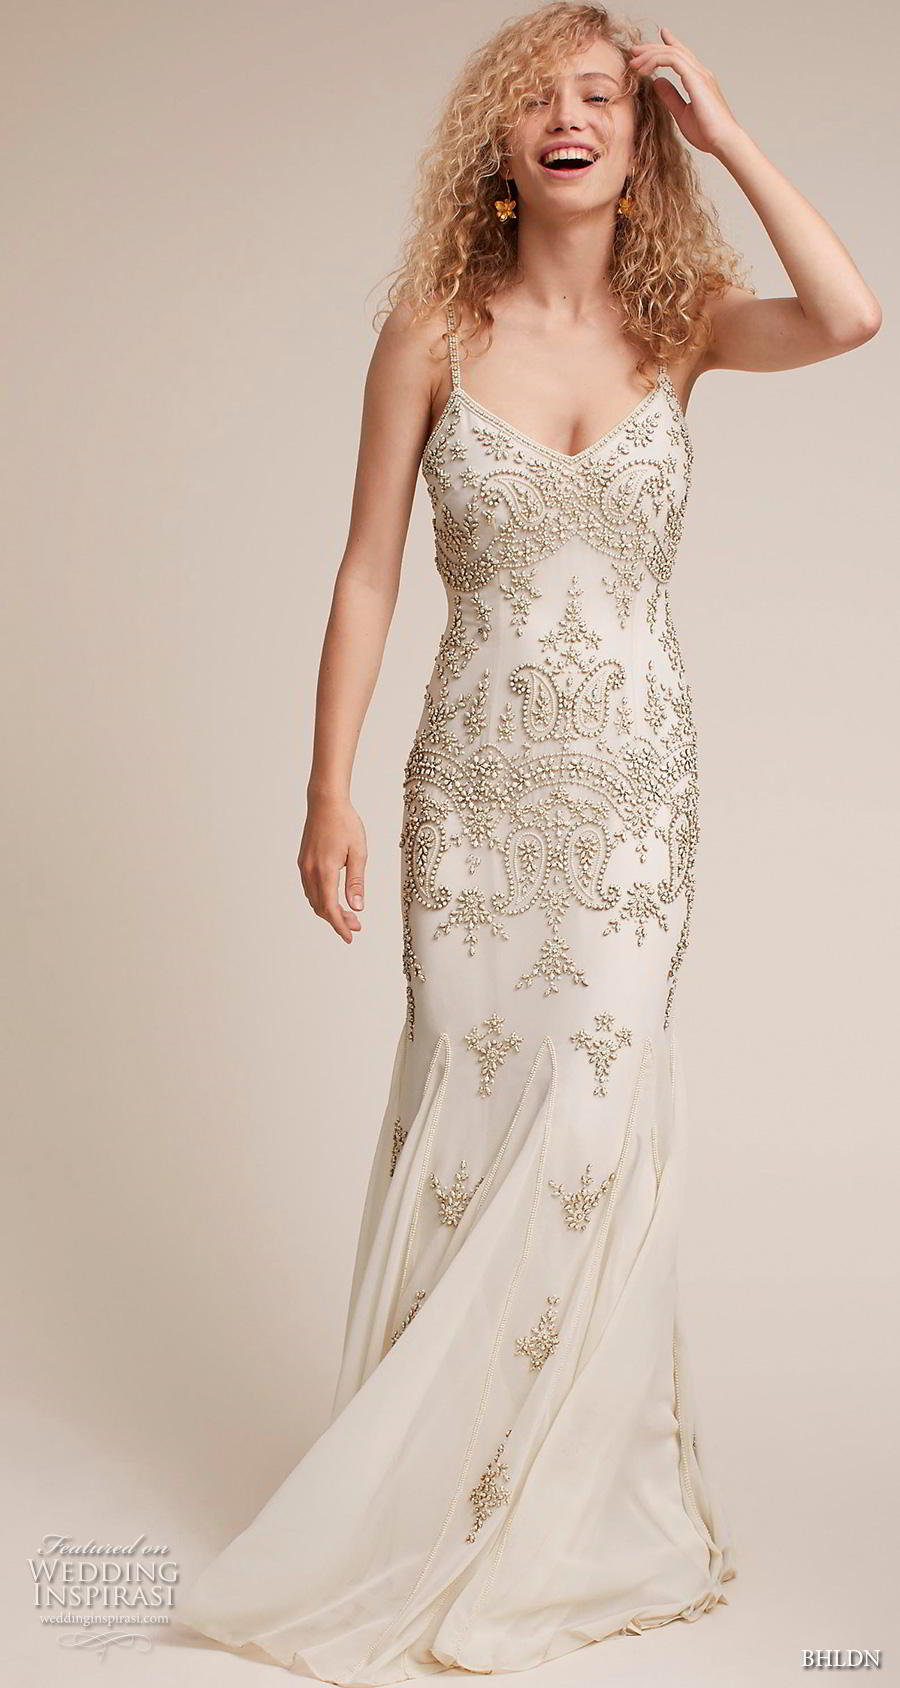 bhldn 2018 own bridal sleeveless thin strap diamond neck full embellishment glitzy art deco elegant sheath wedding dress sweep train (2) mv